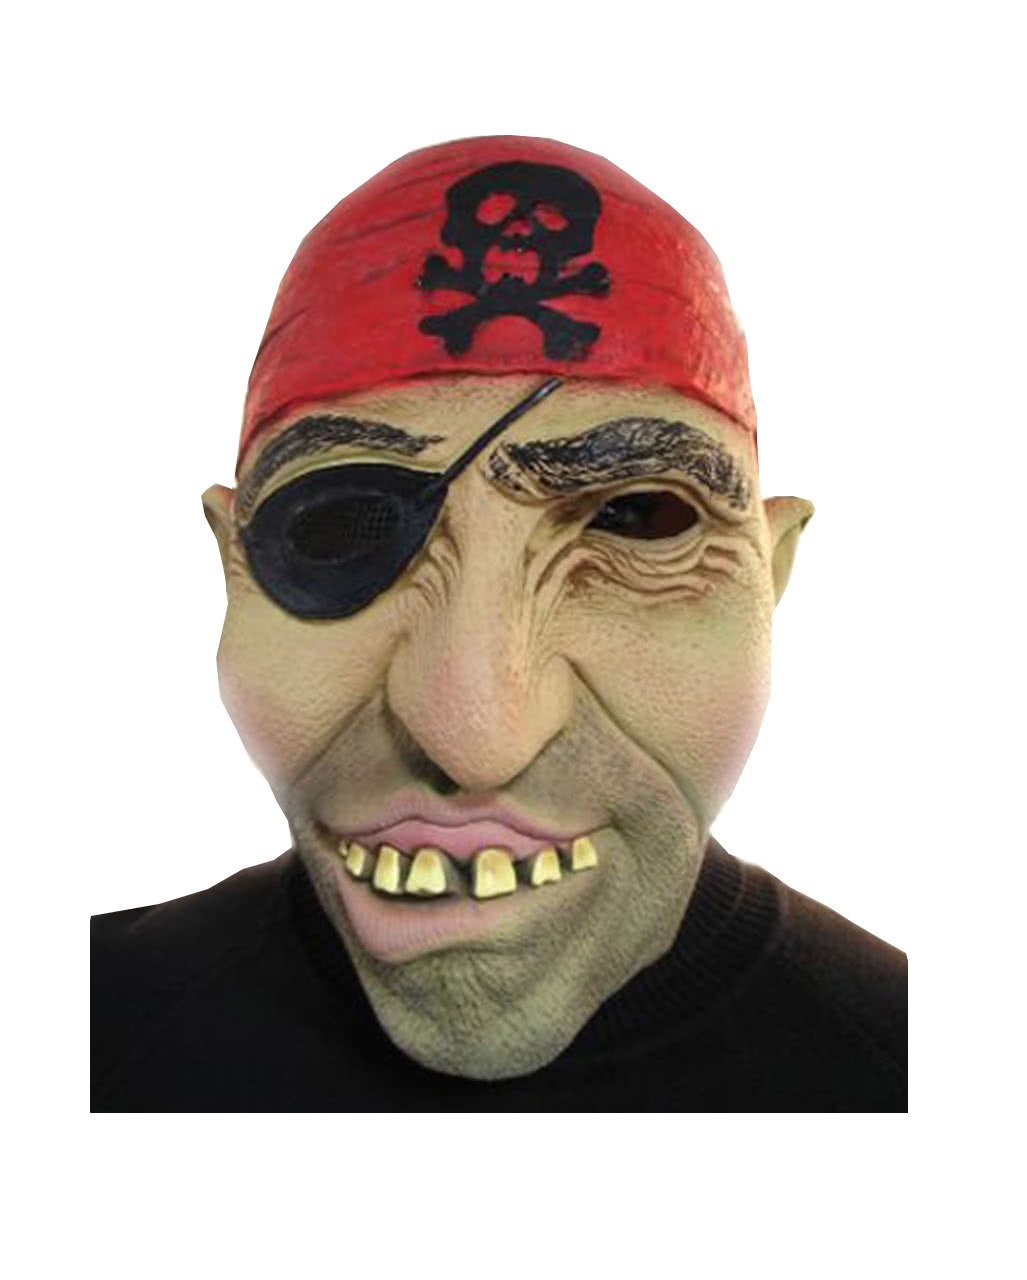 6a965de3c68 Pirate mask with eye flap